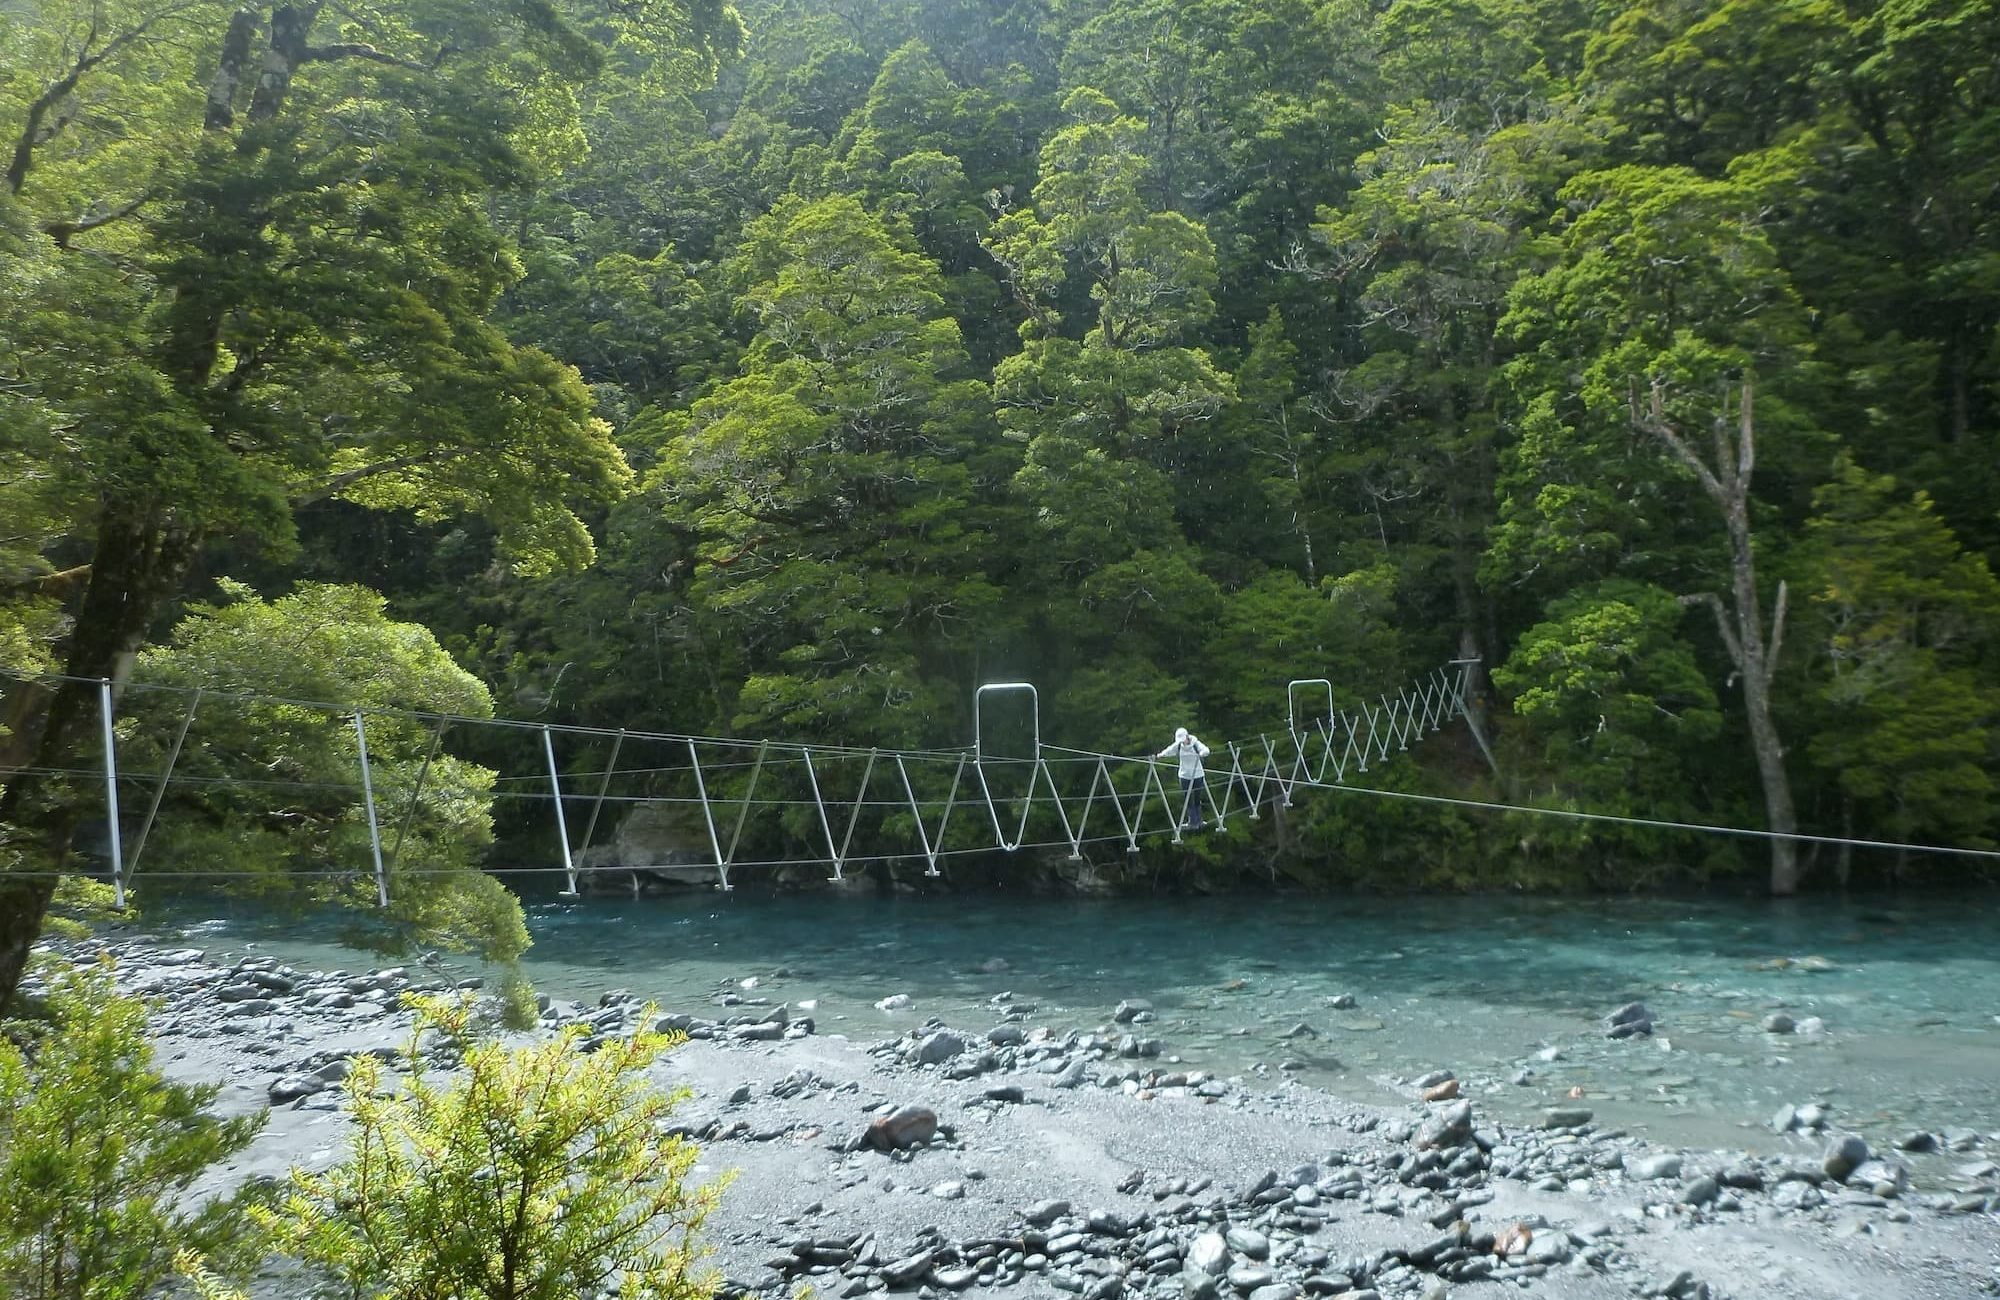 Swingbridge on the East Matukituki